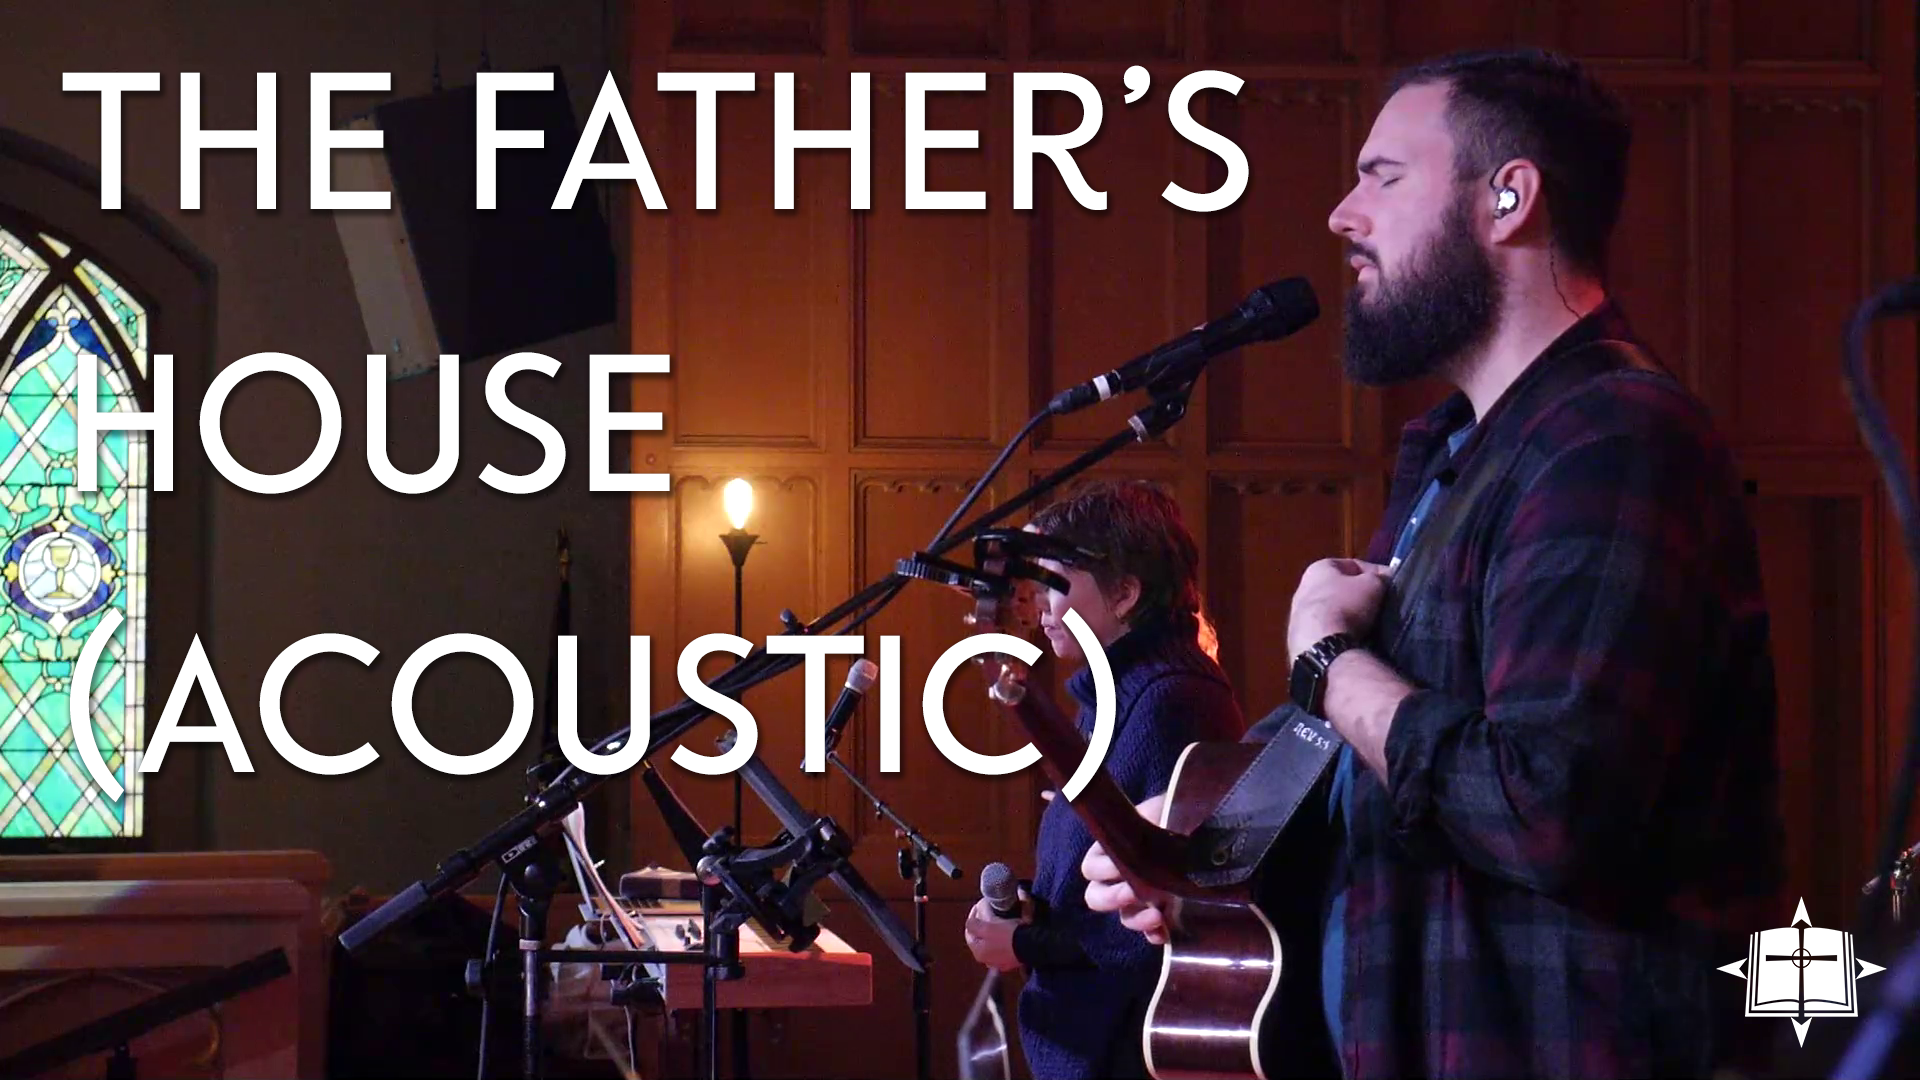 The Father's House (Acoustic) Image